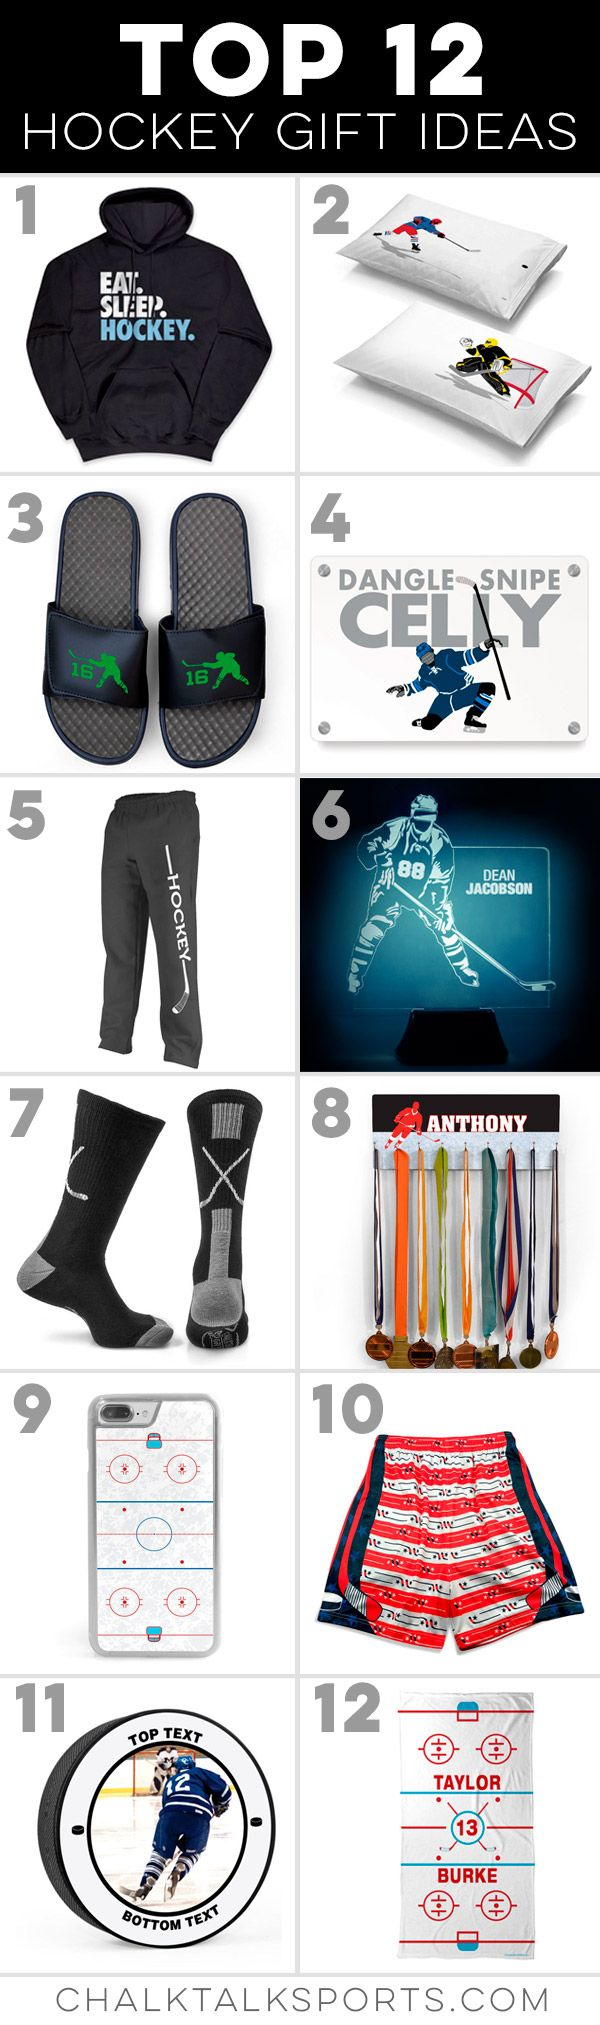 Our Top 12 Hockey Gift Ideas For Your Favorite Hockey Player Fan Or Team Gifts Perfect For Birthdays Holidays Or Hockey Gifts Hockey Team Gifts Hockey Kids